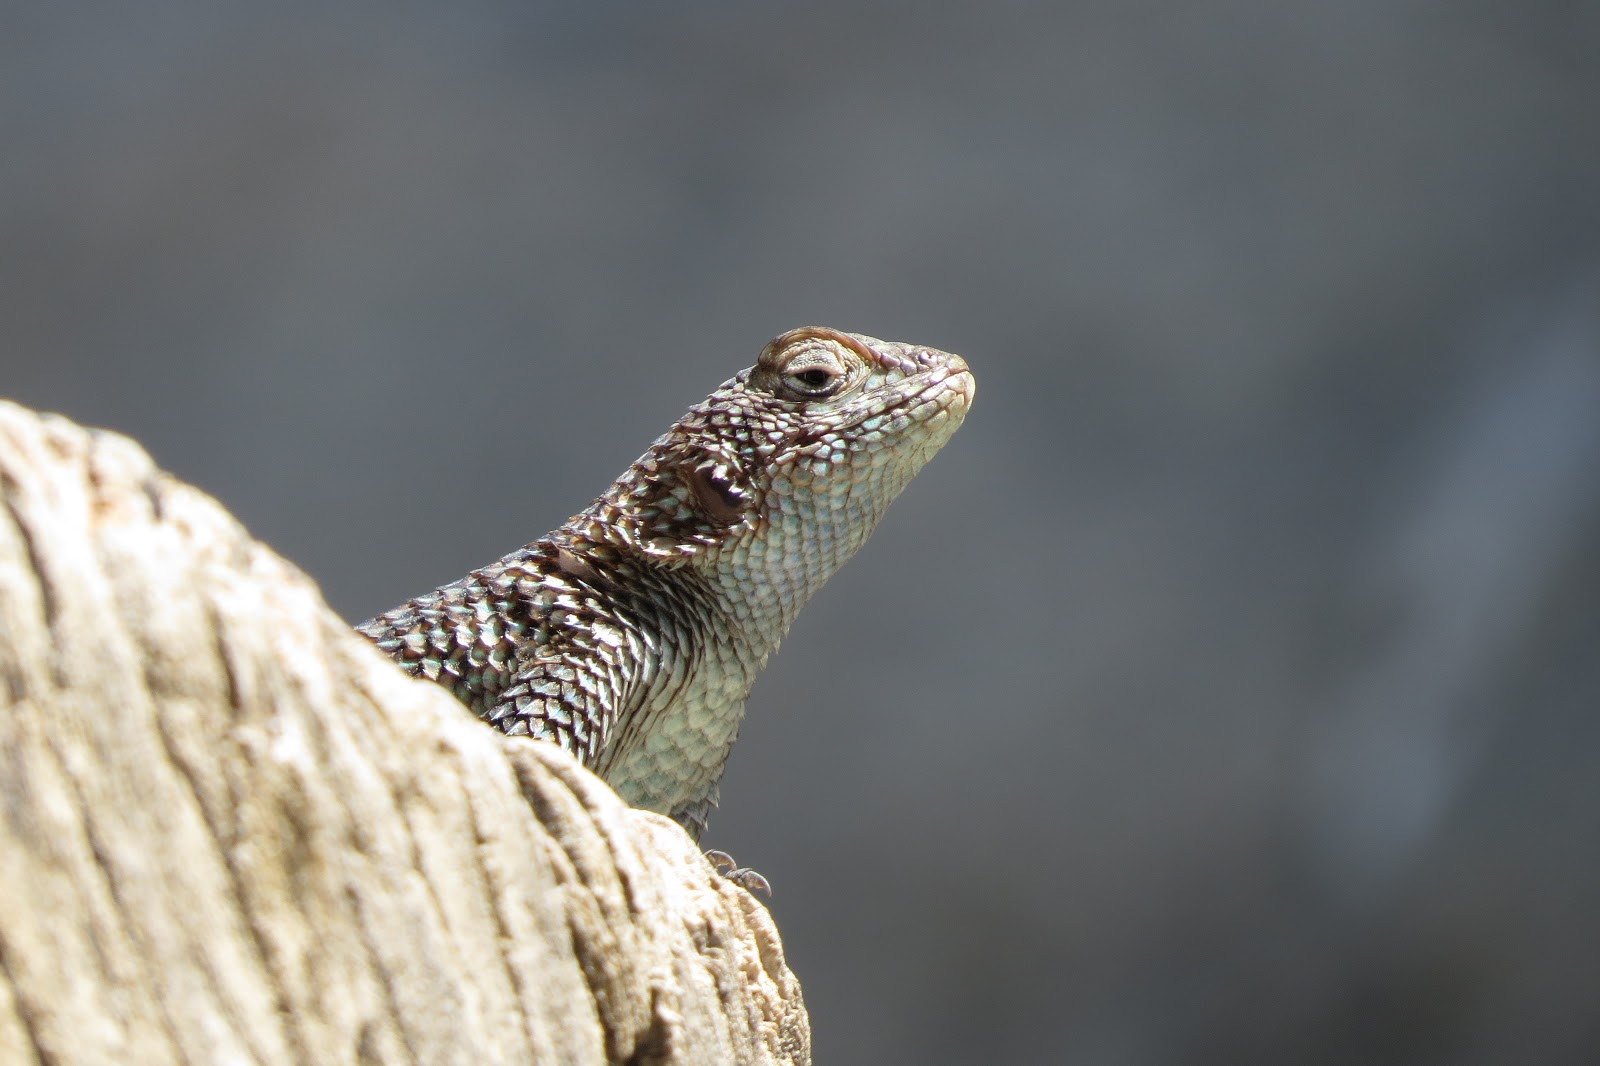 Indian Canyon spiny lizard